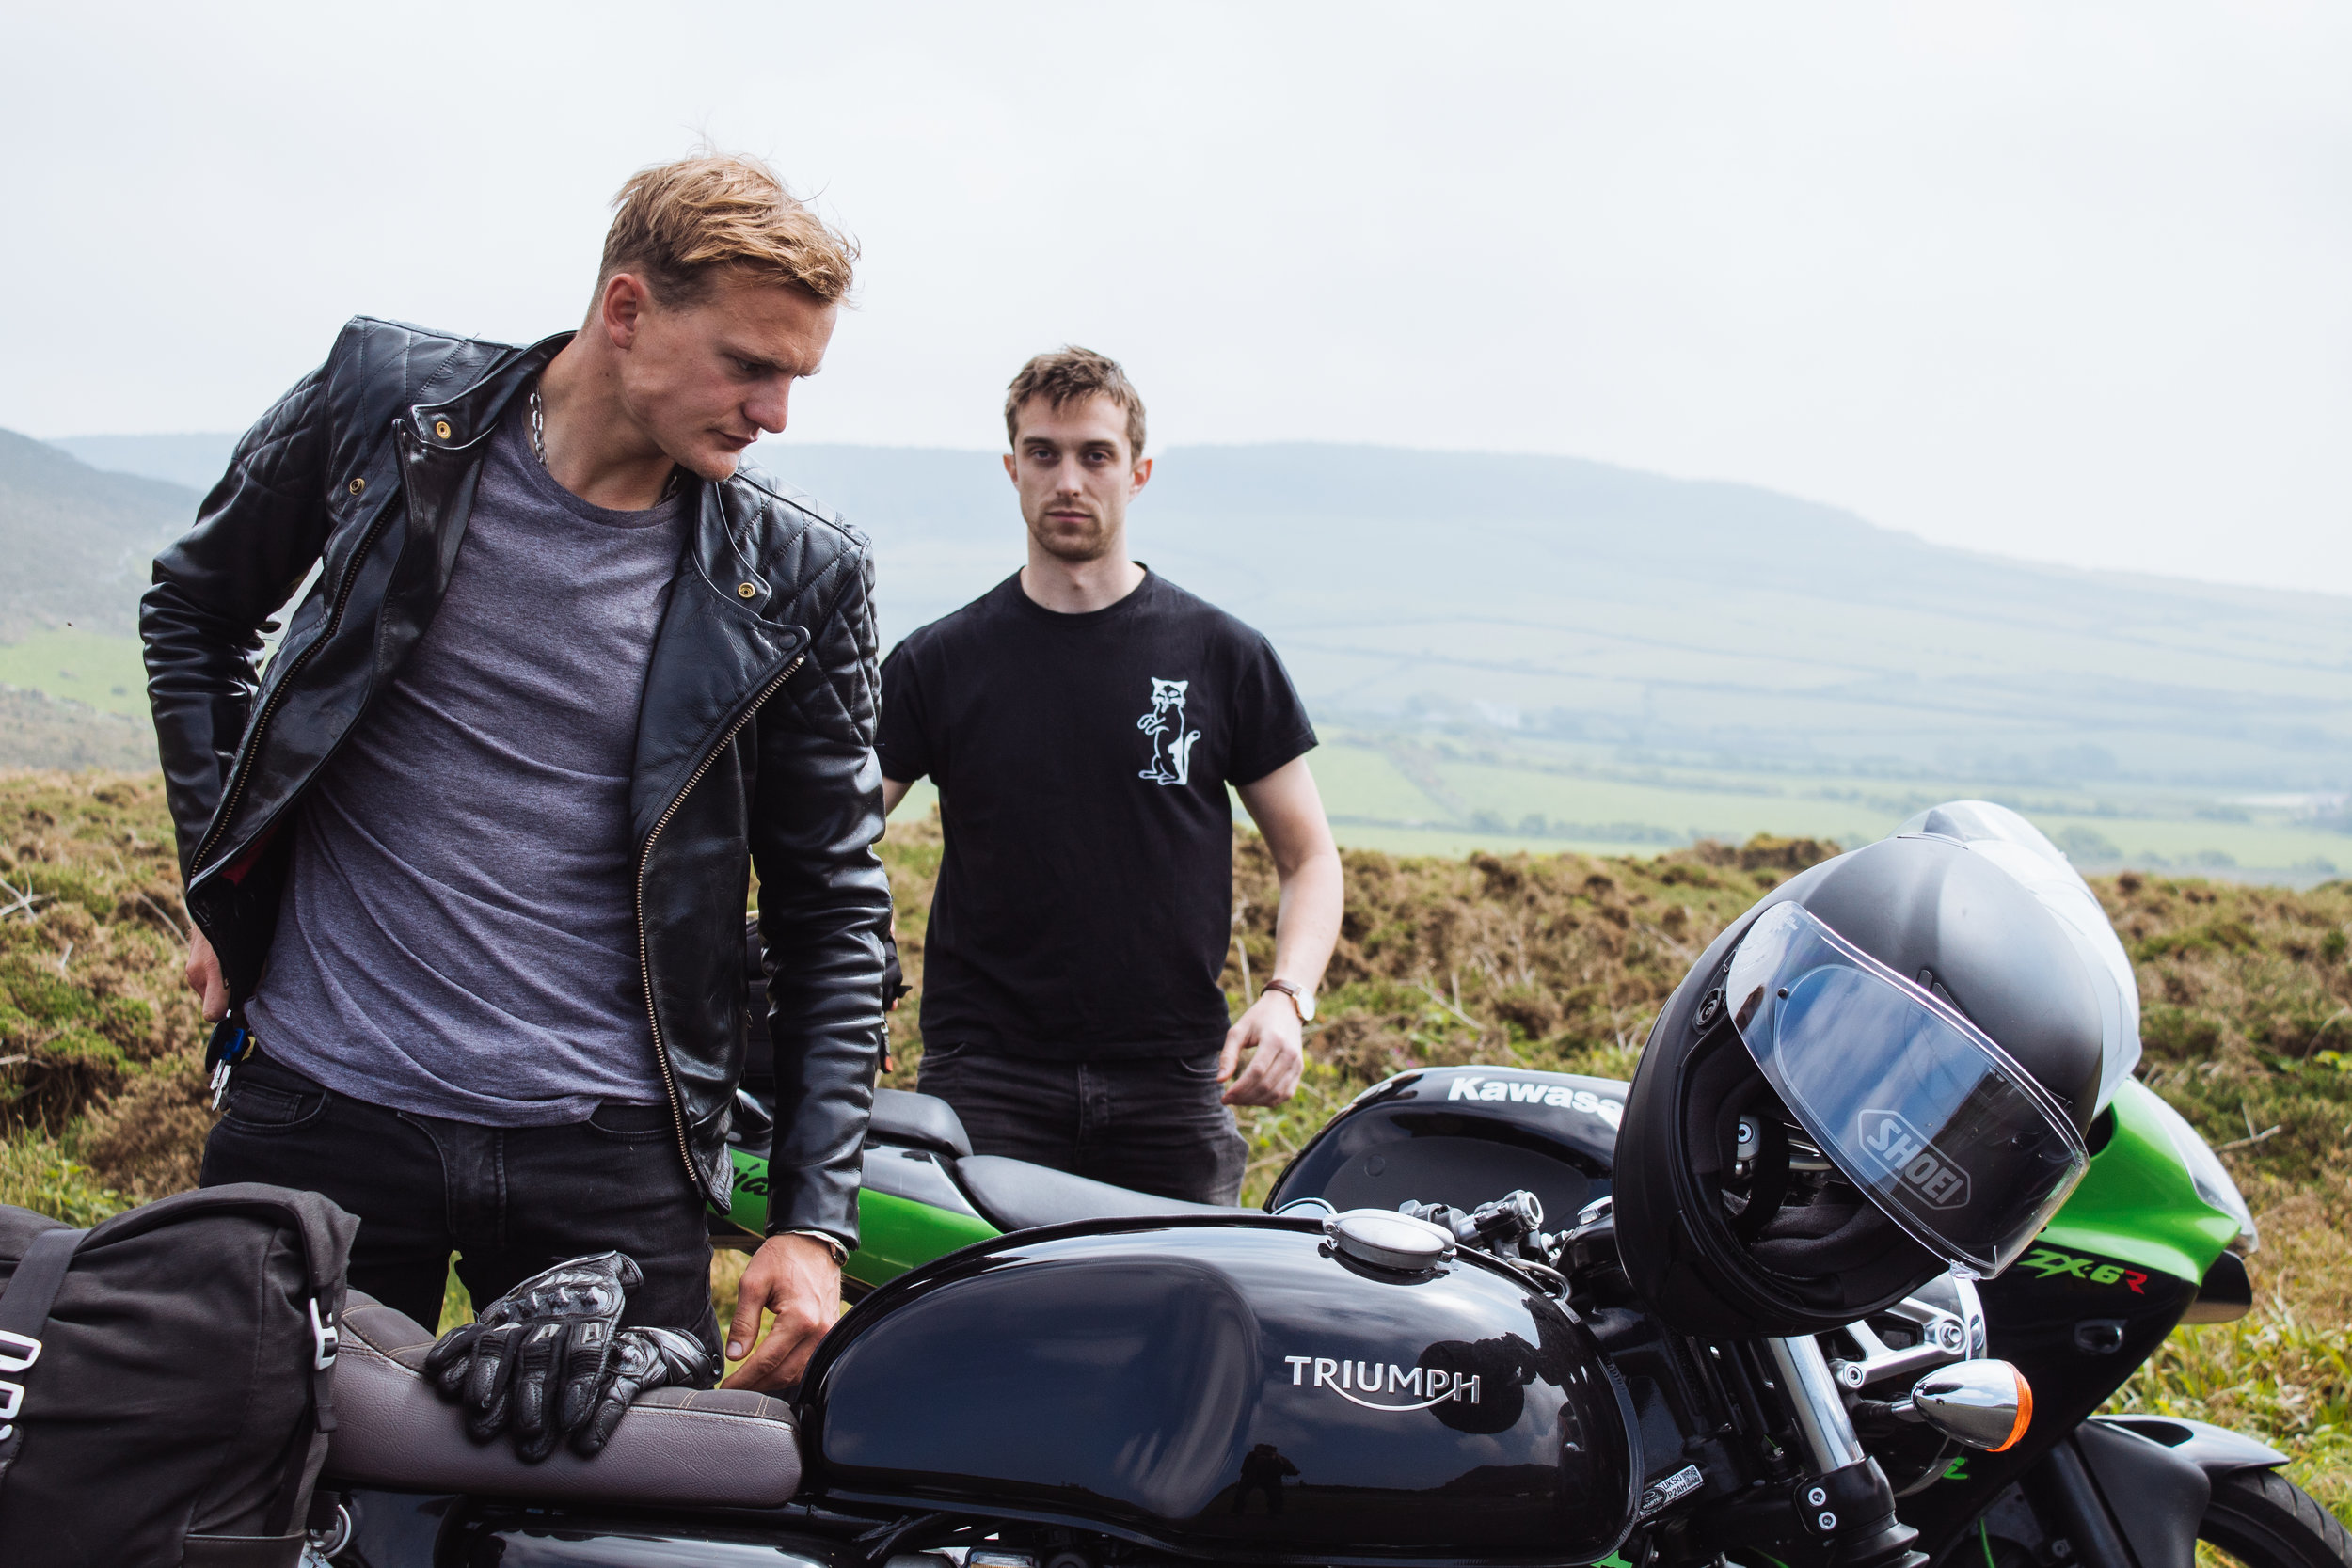 Jo with his Triumph Thruxton, and Charlie with his Kawasaki Ninja